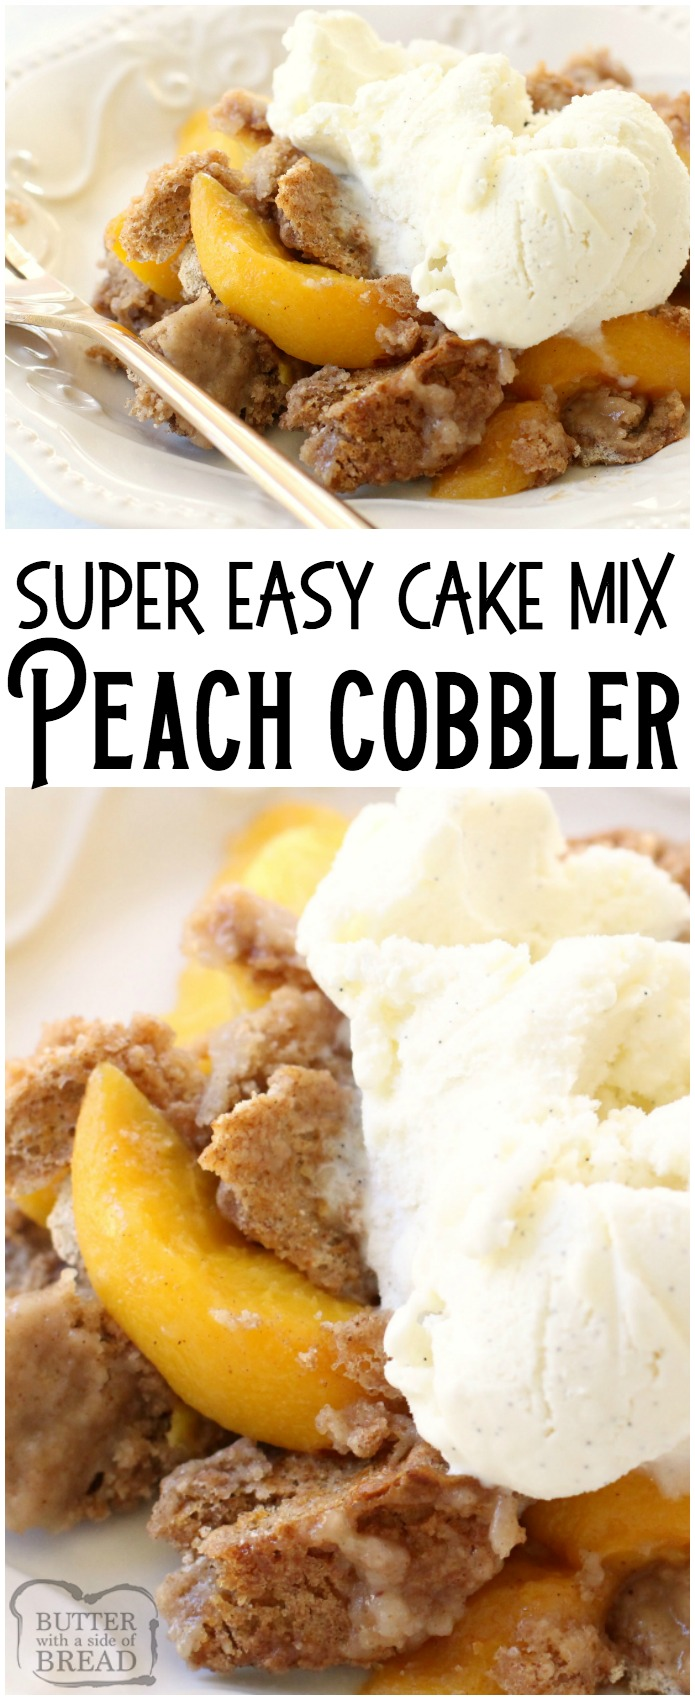 Peach Cobbler with Cake Mix could not be any simpler to make! All it takes is a cake mix + peaches + a can of soda. Delicious and easy peach cobbler recipe! #peach #cobbler #cakemix #dessert #baking #sweets #recipe from BUTTER WITH A SIDE OF BREAD